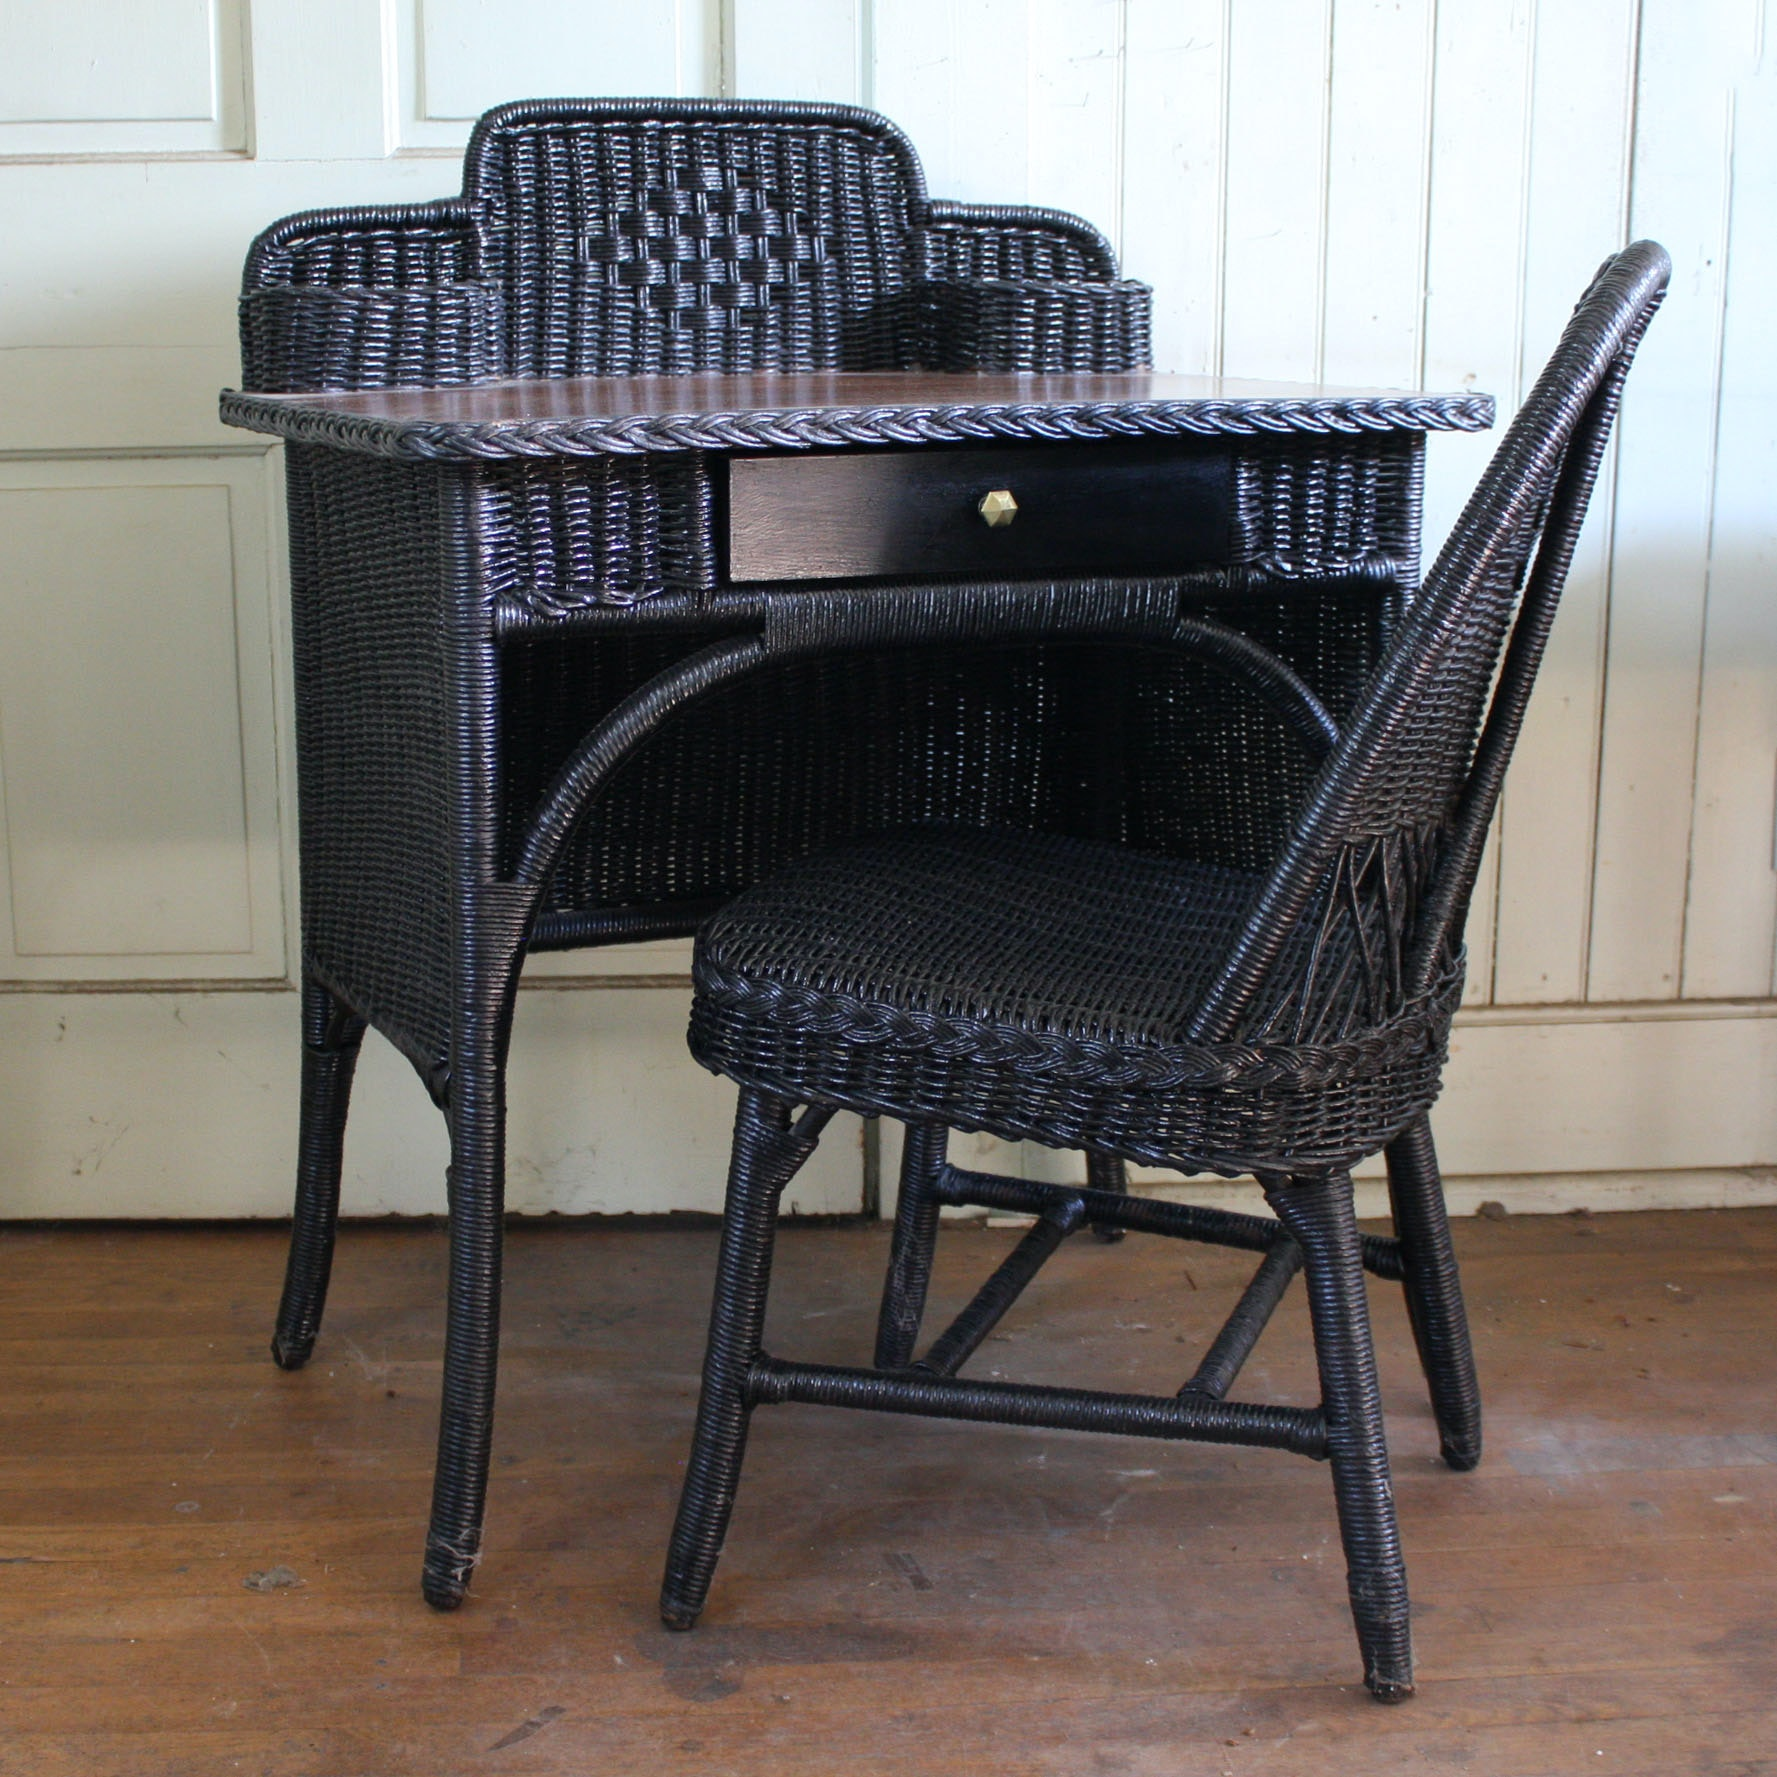 Black Wicker Desk and Chair